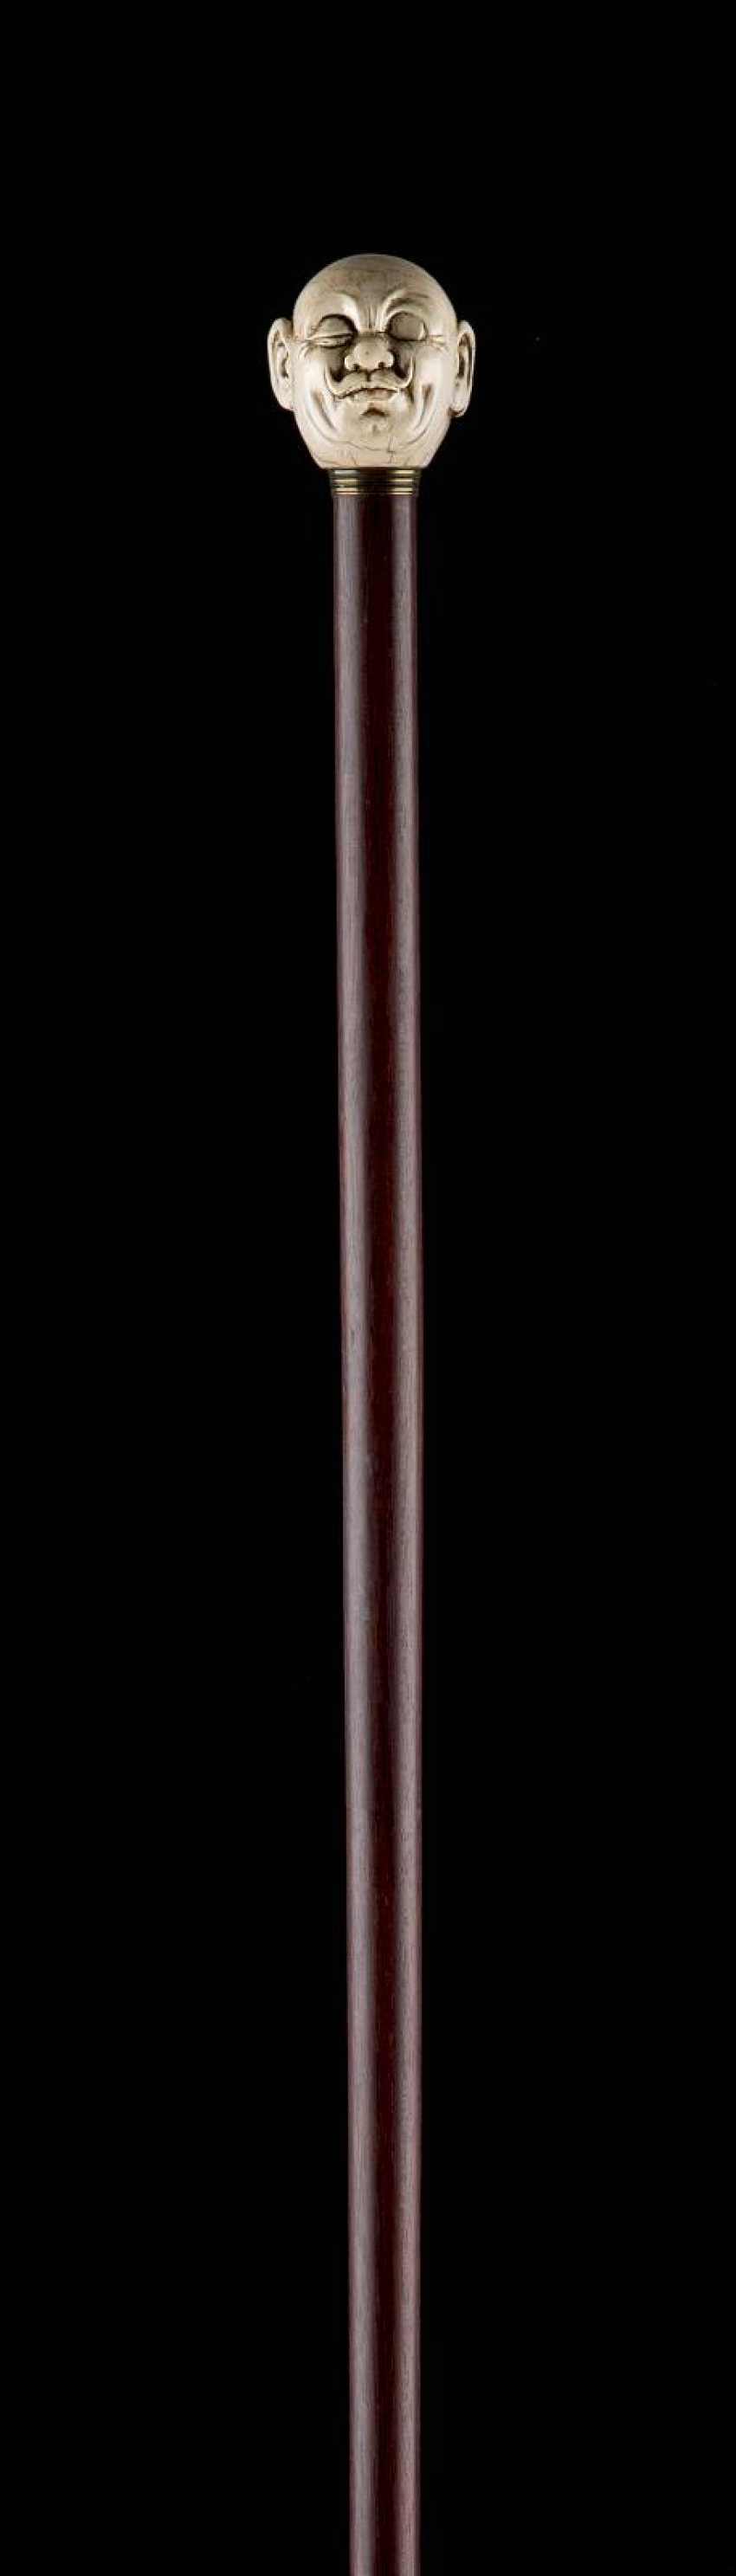 THE JANUS-HEADED ART-DECO-WALKING STICK - photo 2